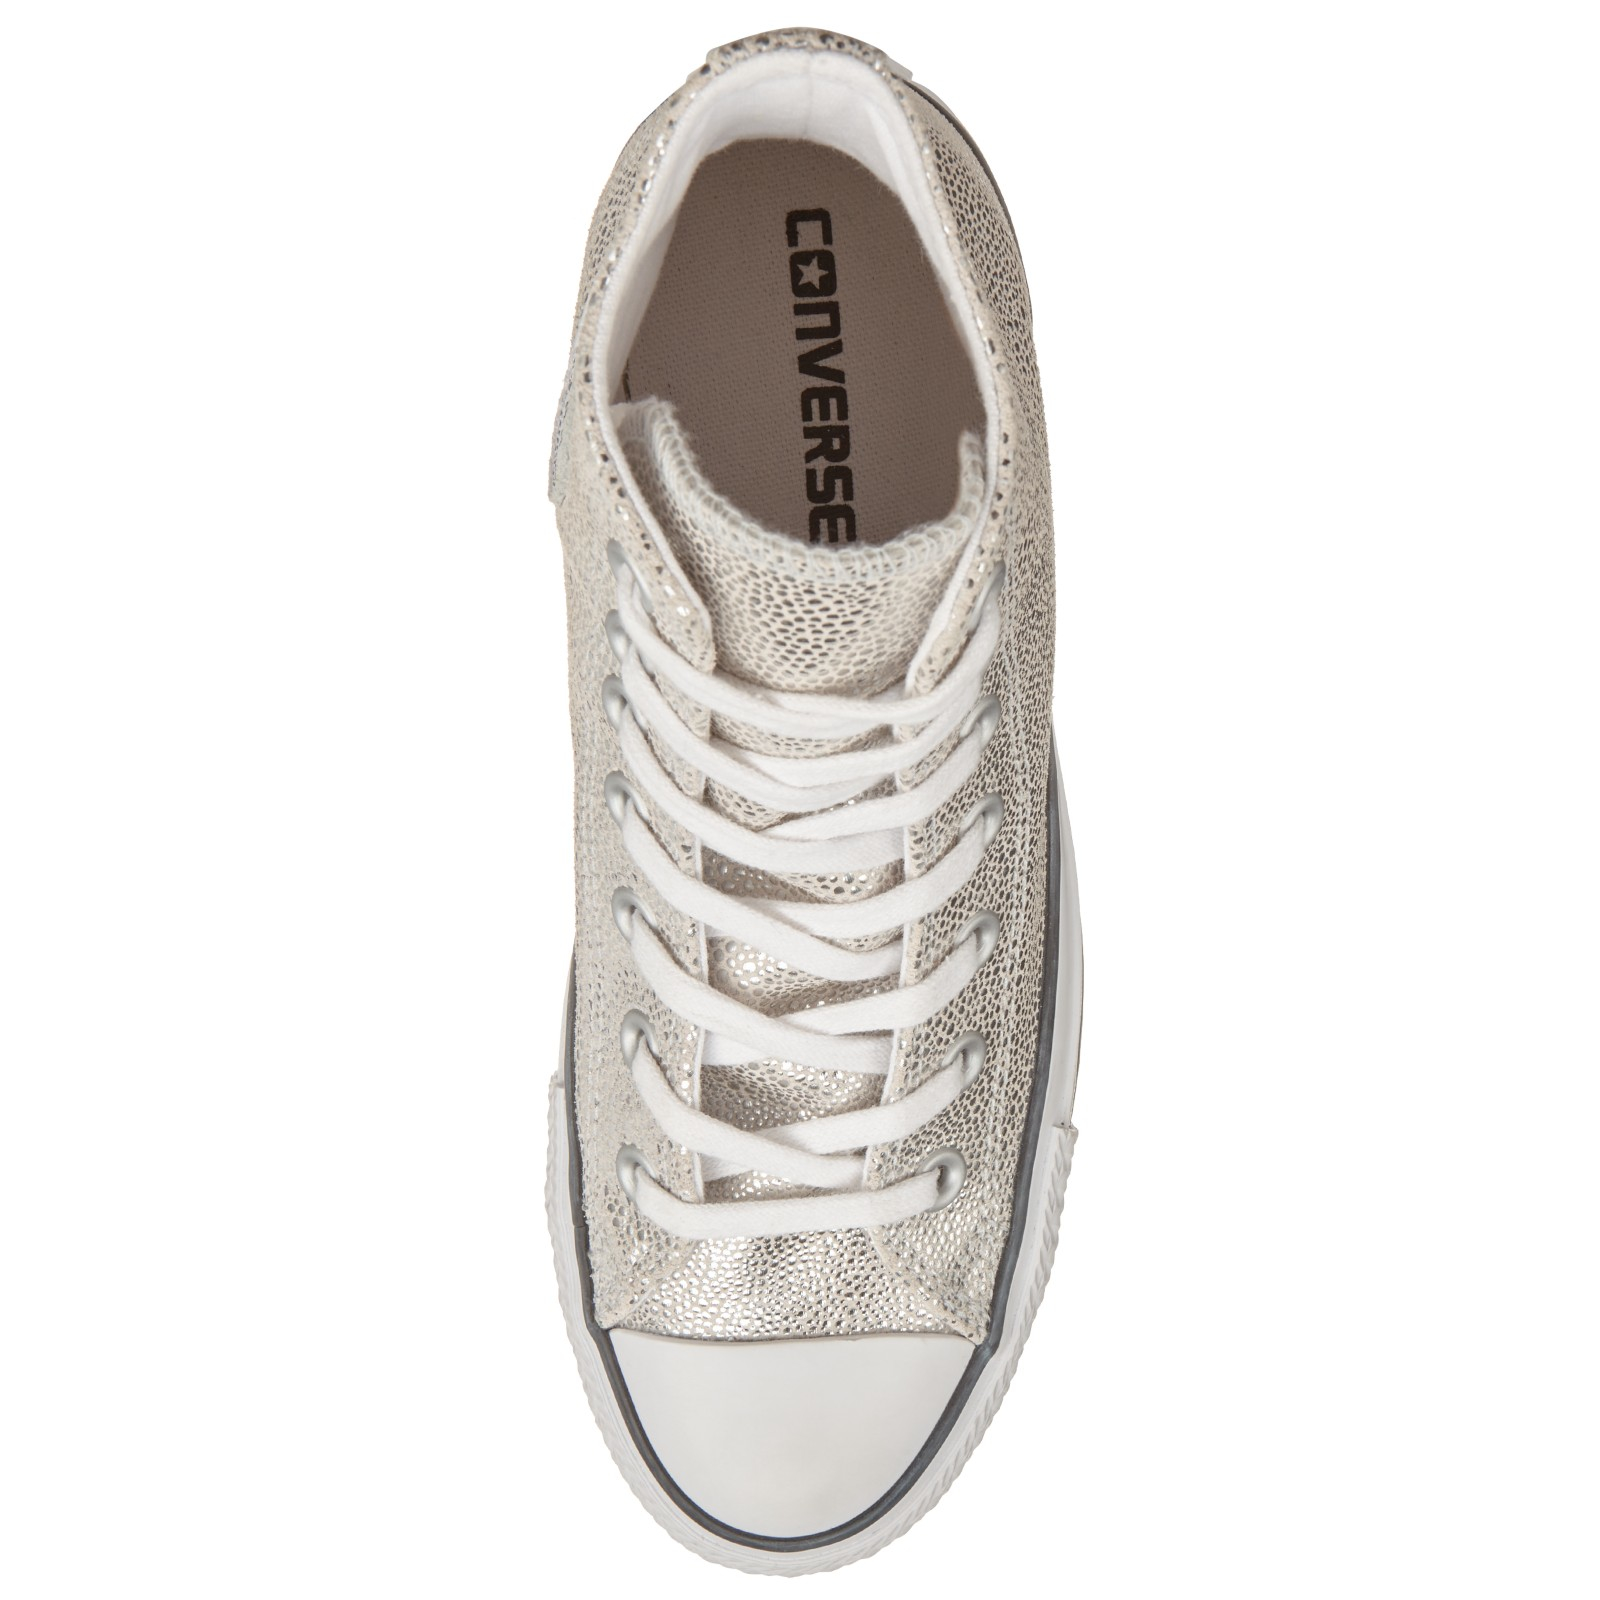 Converse Leather Chuck Taylor All Star Stingray Hi Top Trainers in Silver (Metallic)